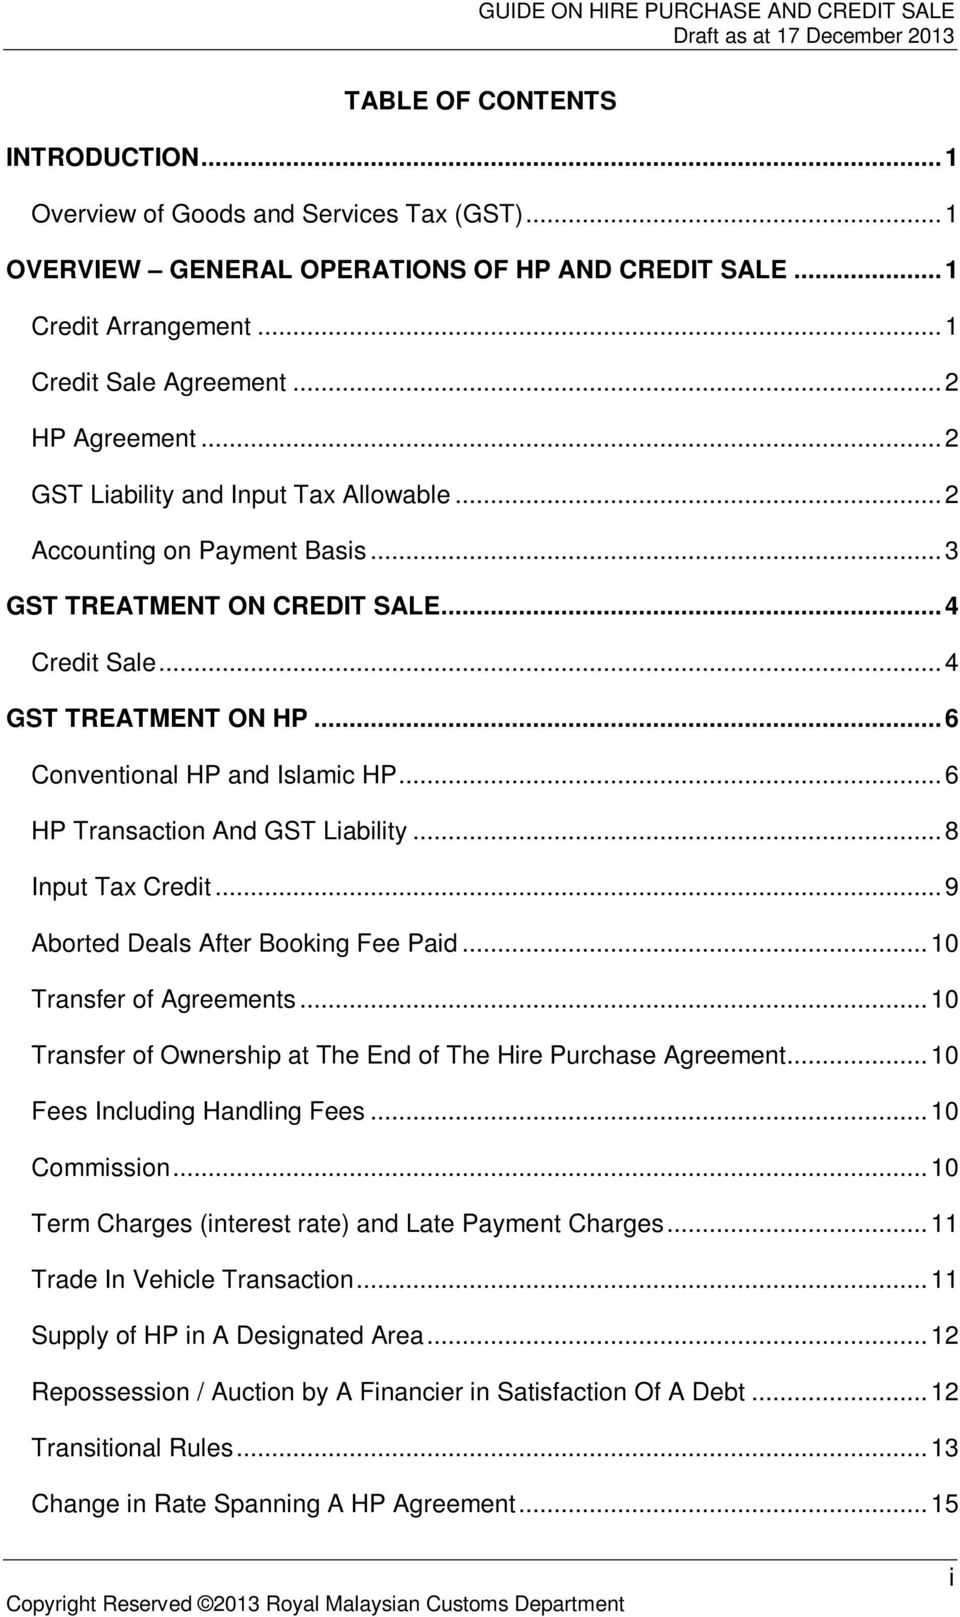 .. 6 HP Transaction And GST Liability... 8 Input Tax Credit... 9 Aborted Deals After Booking Fee Paid... 10 Transfer of Agreements... 10 Transfer of Ownership at The End of The Hire Purchase Agreement.